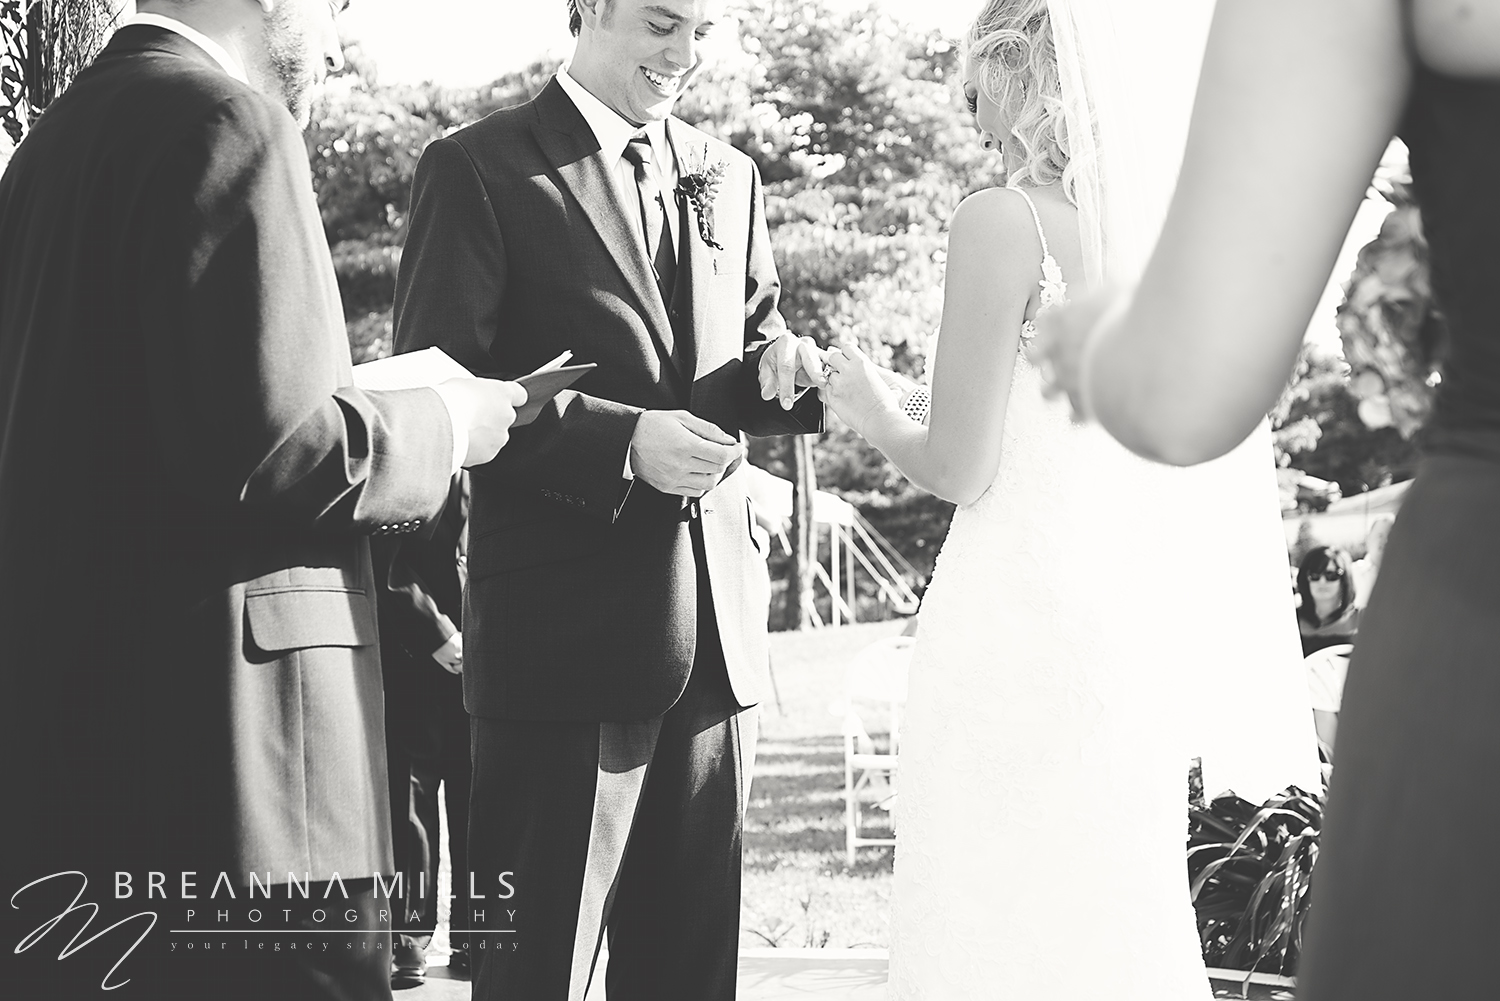 Bride and groom exchange wedding rings during ceremony on their wedding day at the Corey Ippolito Winery wedding venue.